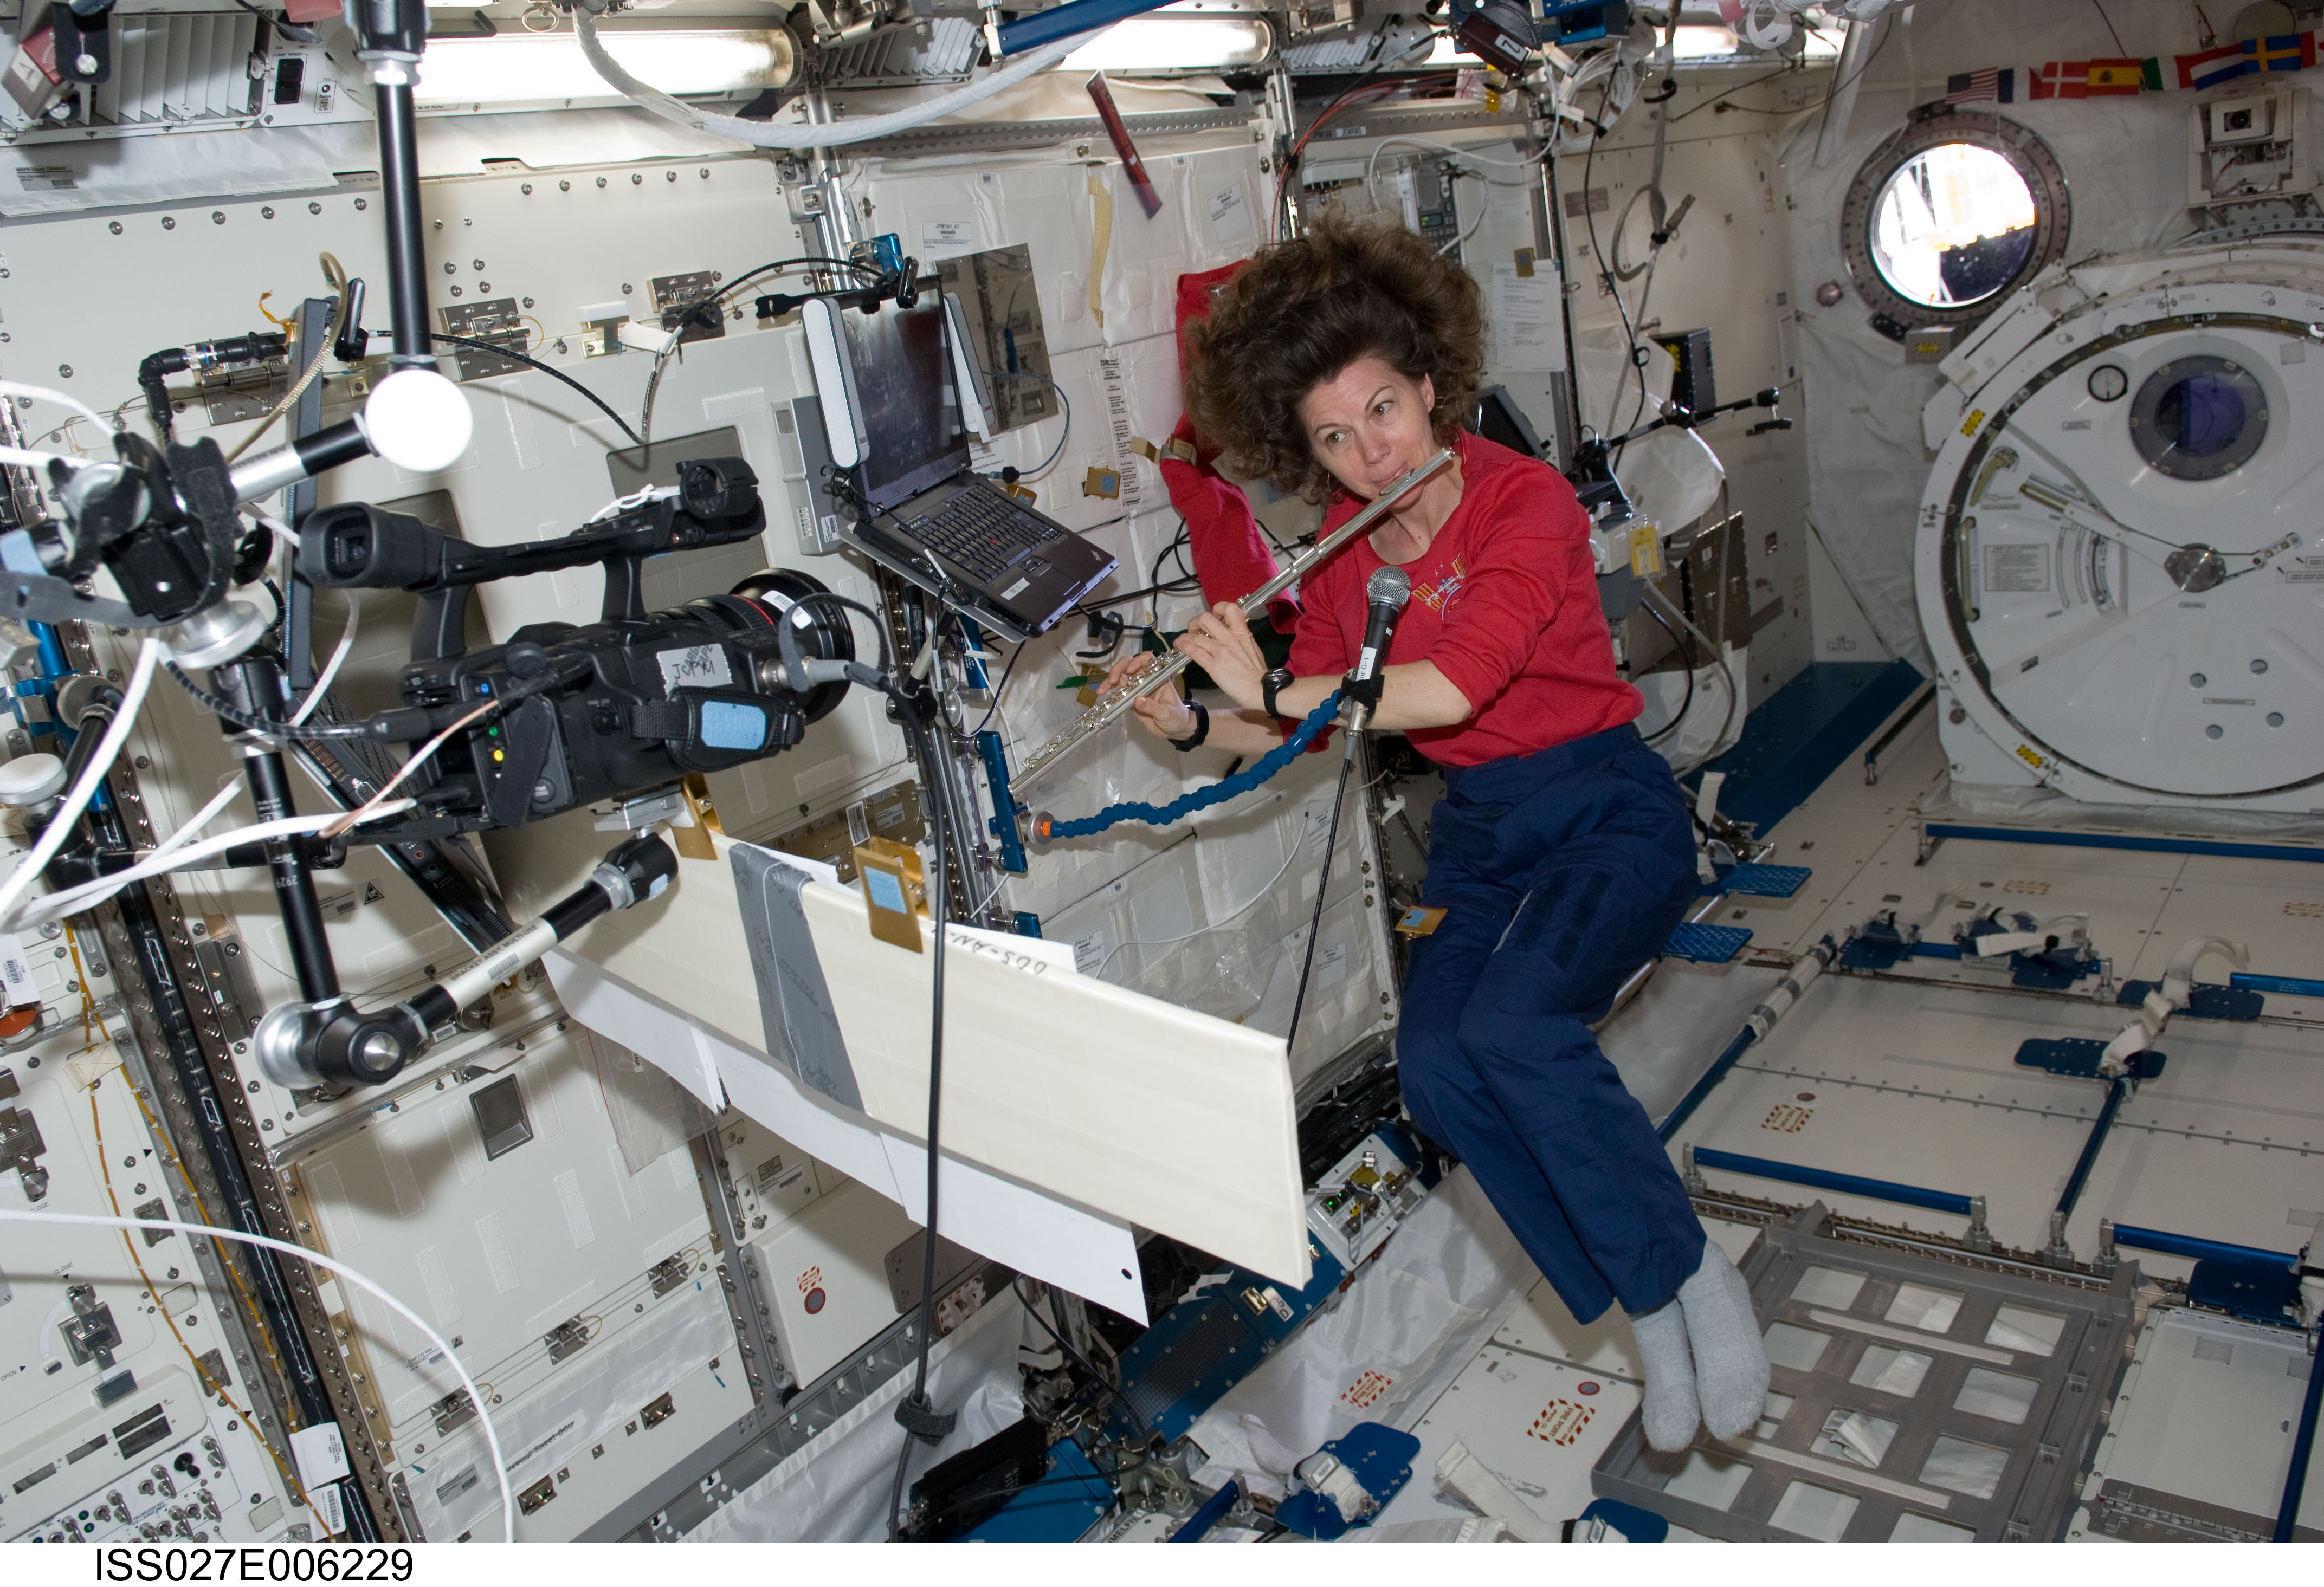 space station astronaut singing - photo #6